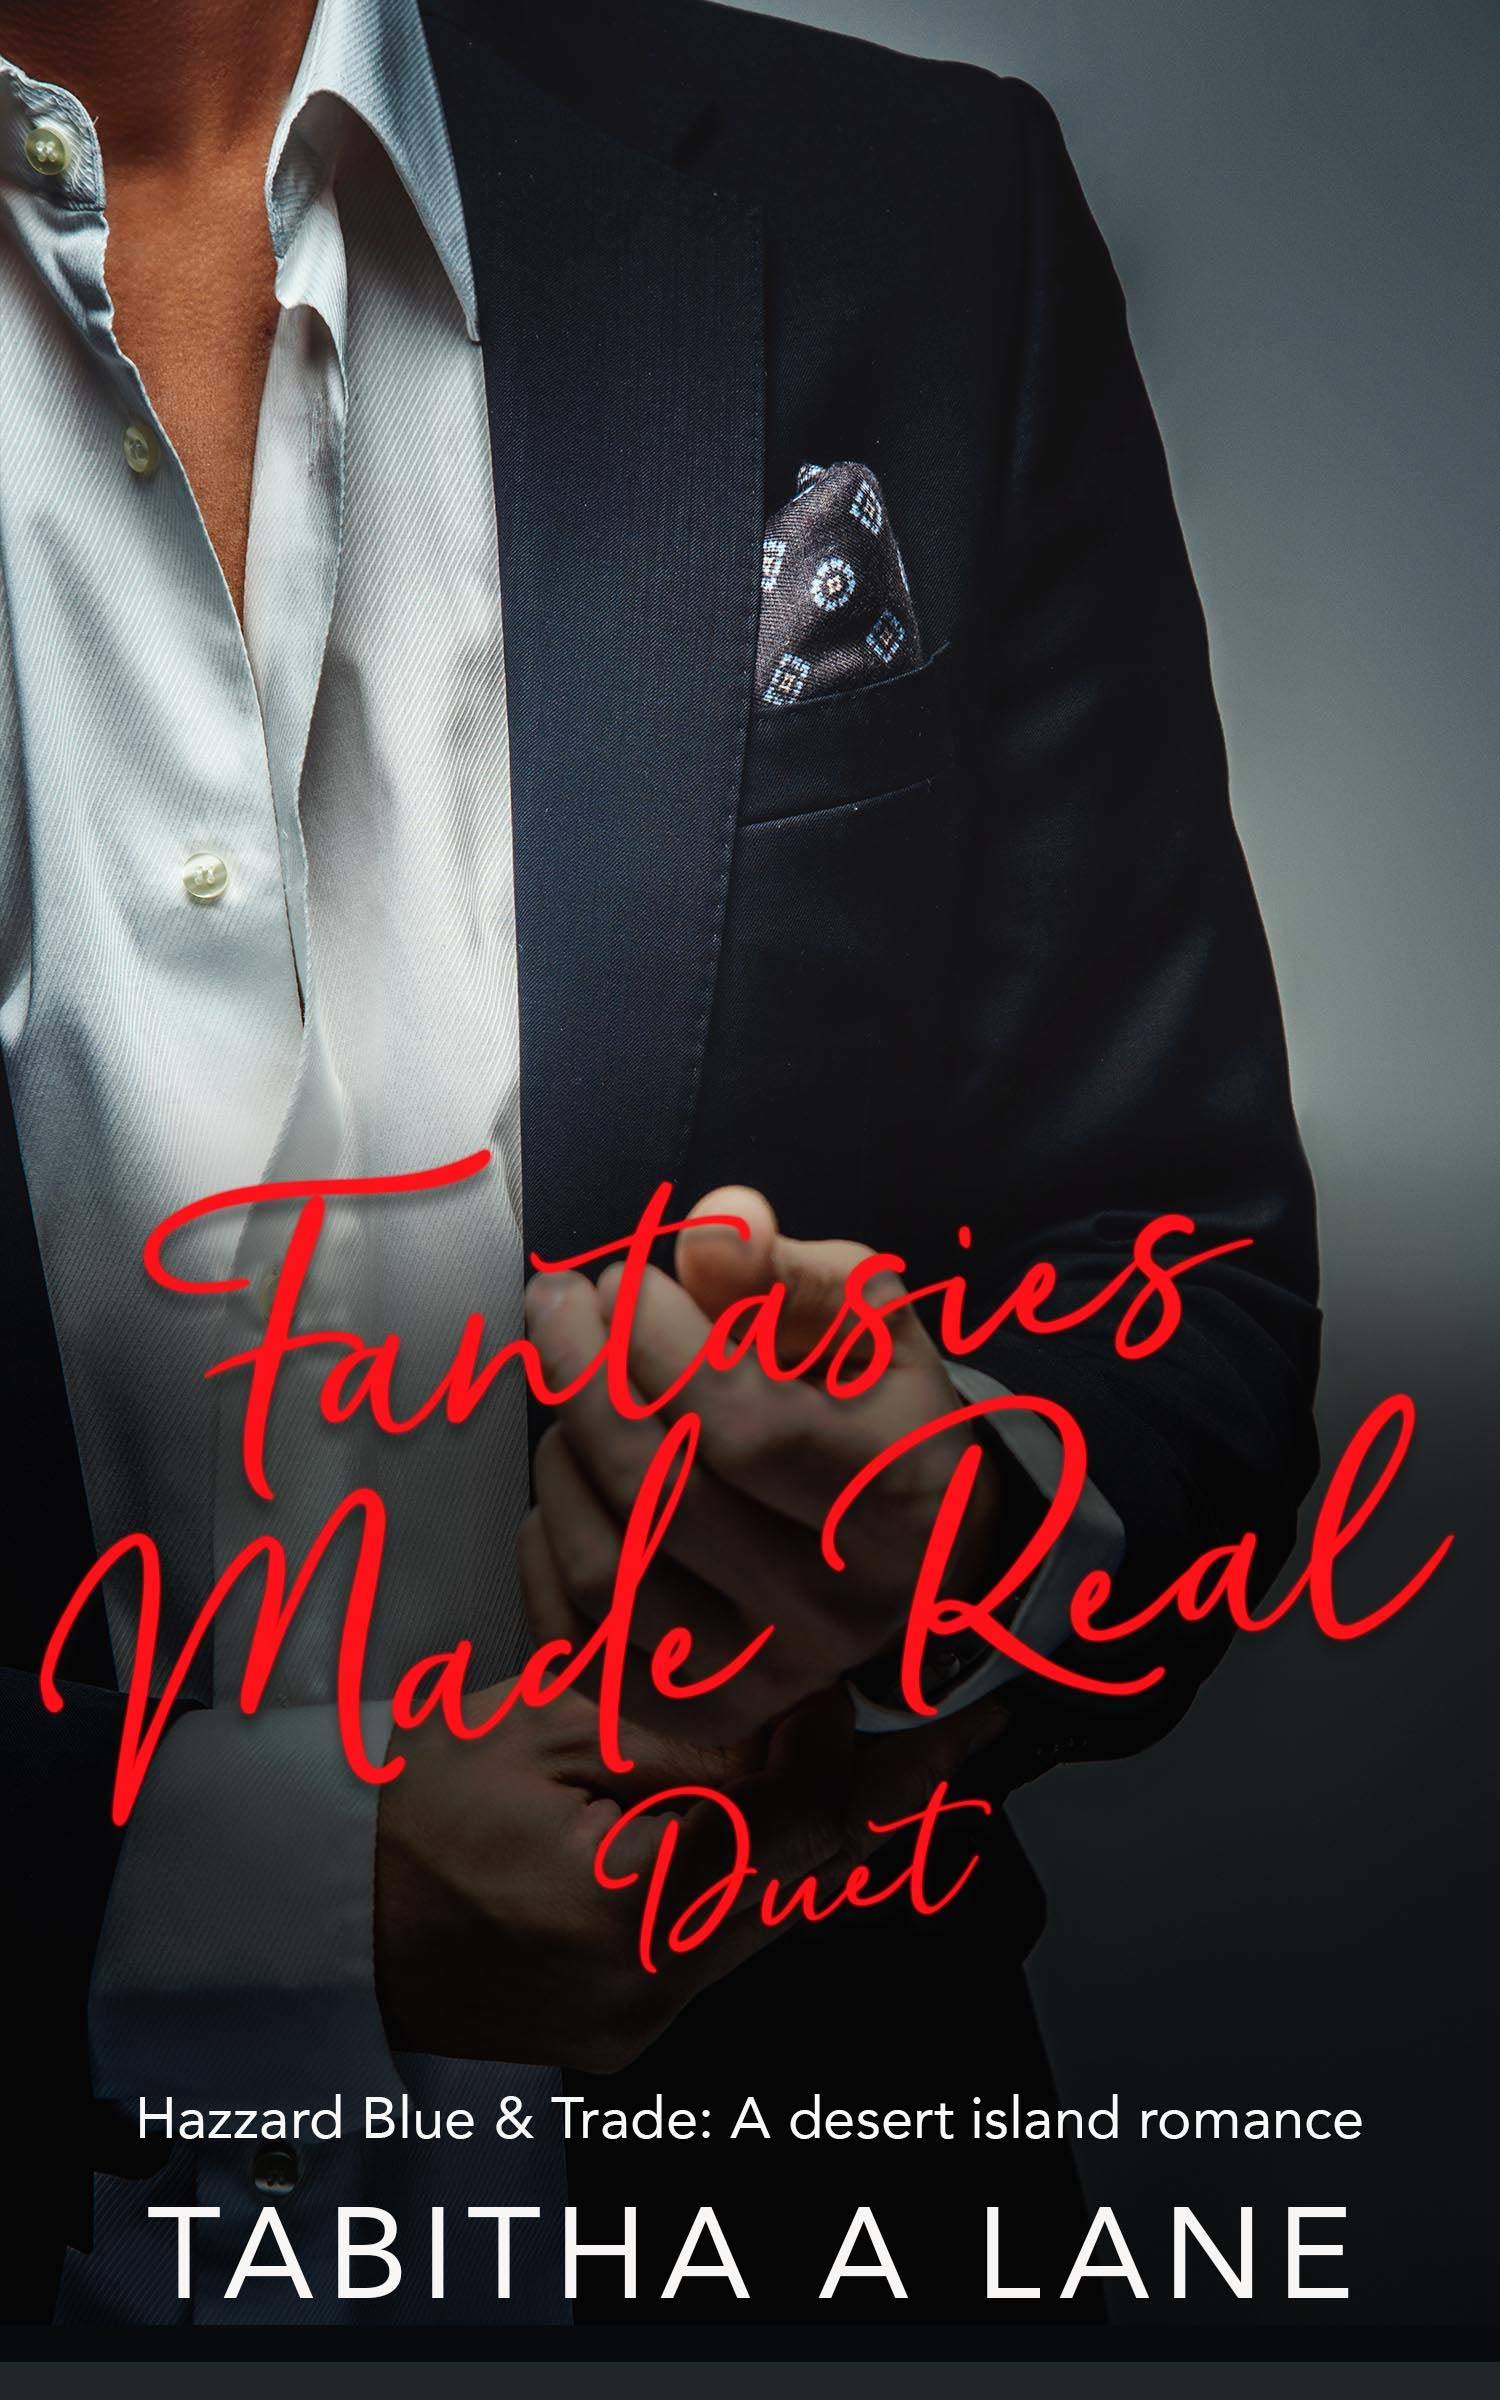 Fantasies Made Real Duet: Two best friends, two standalone romances.